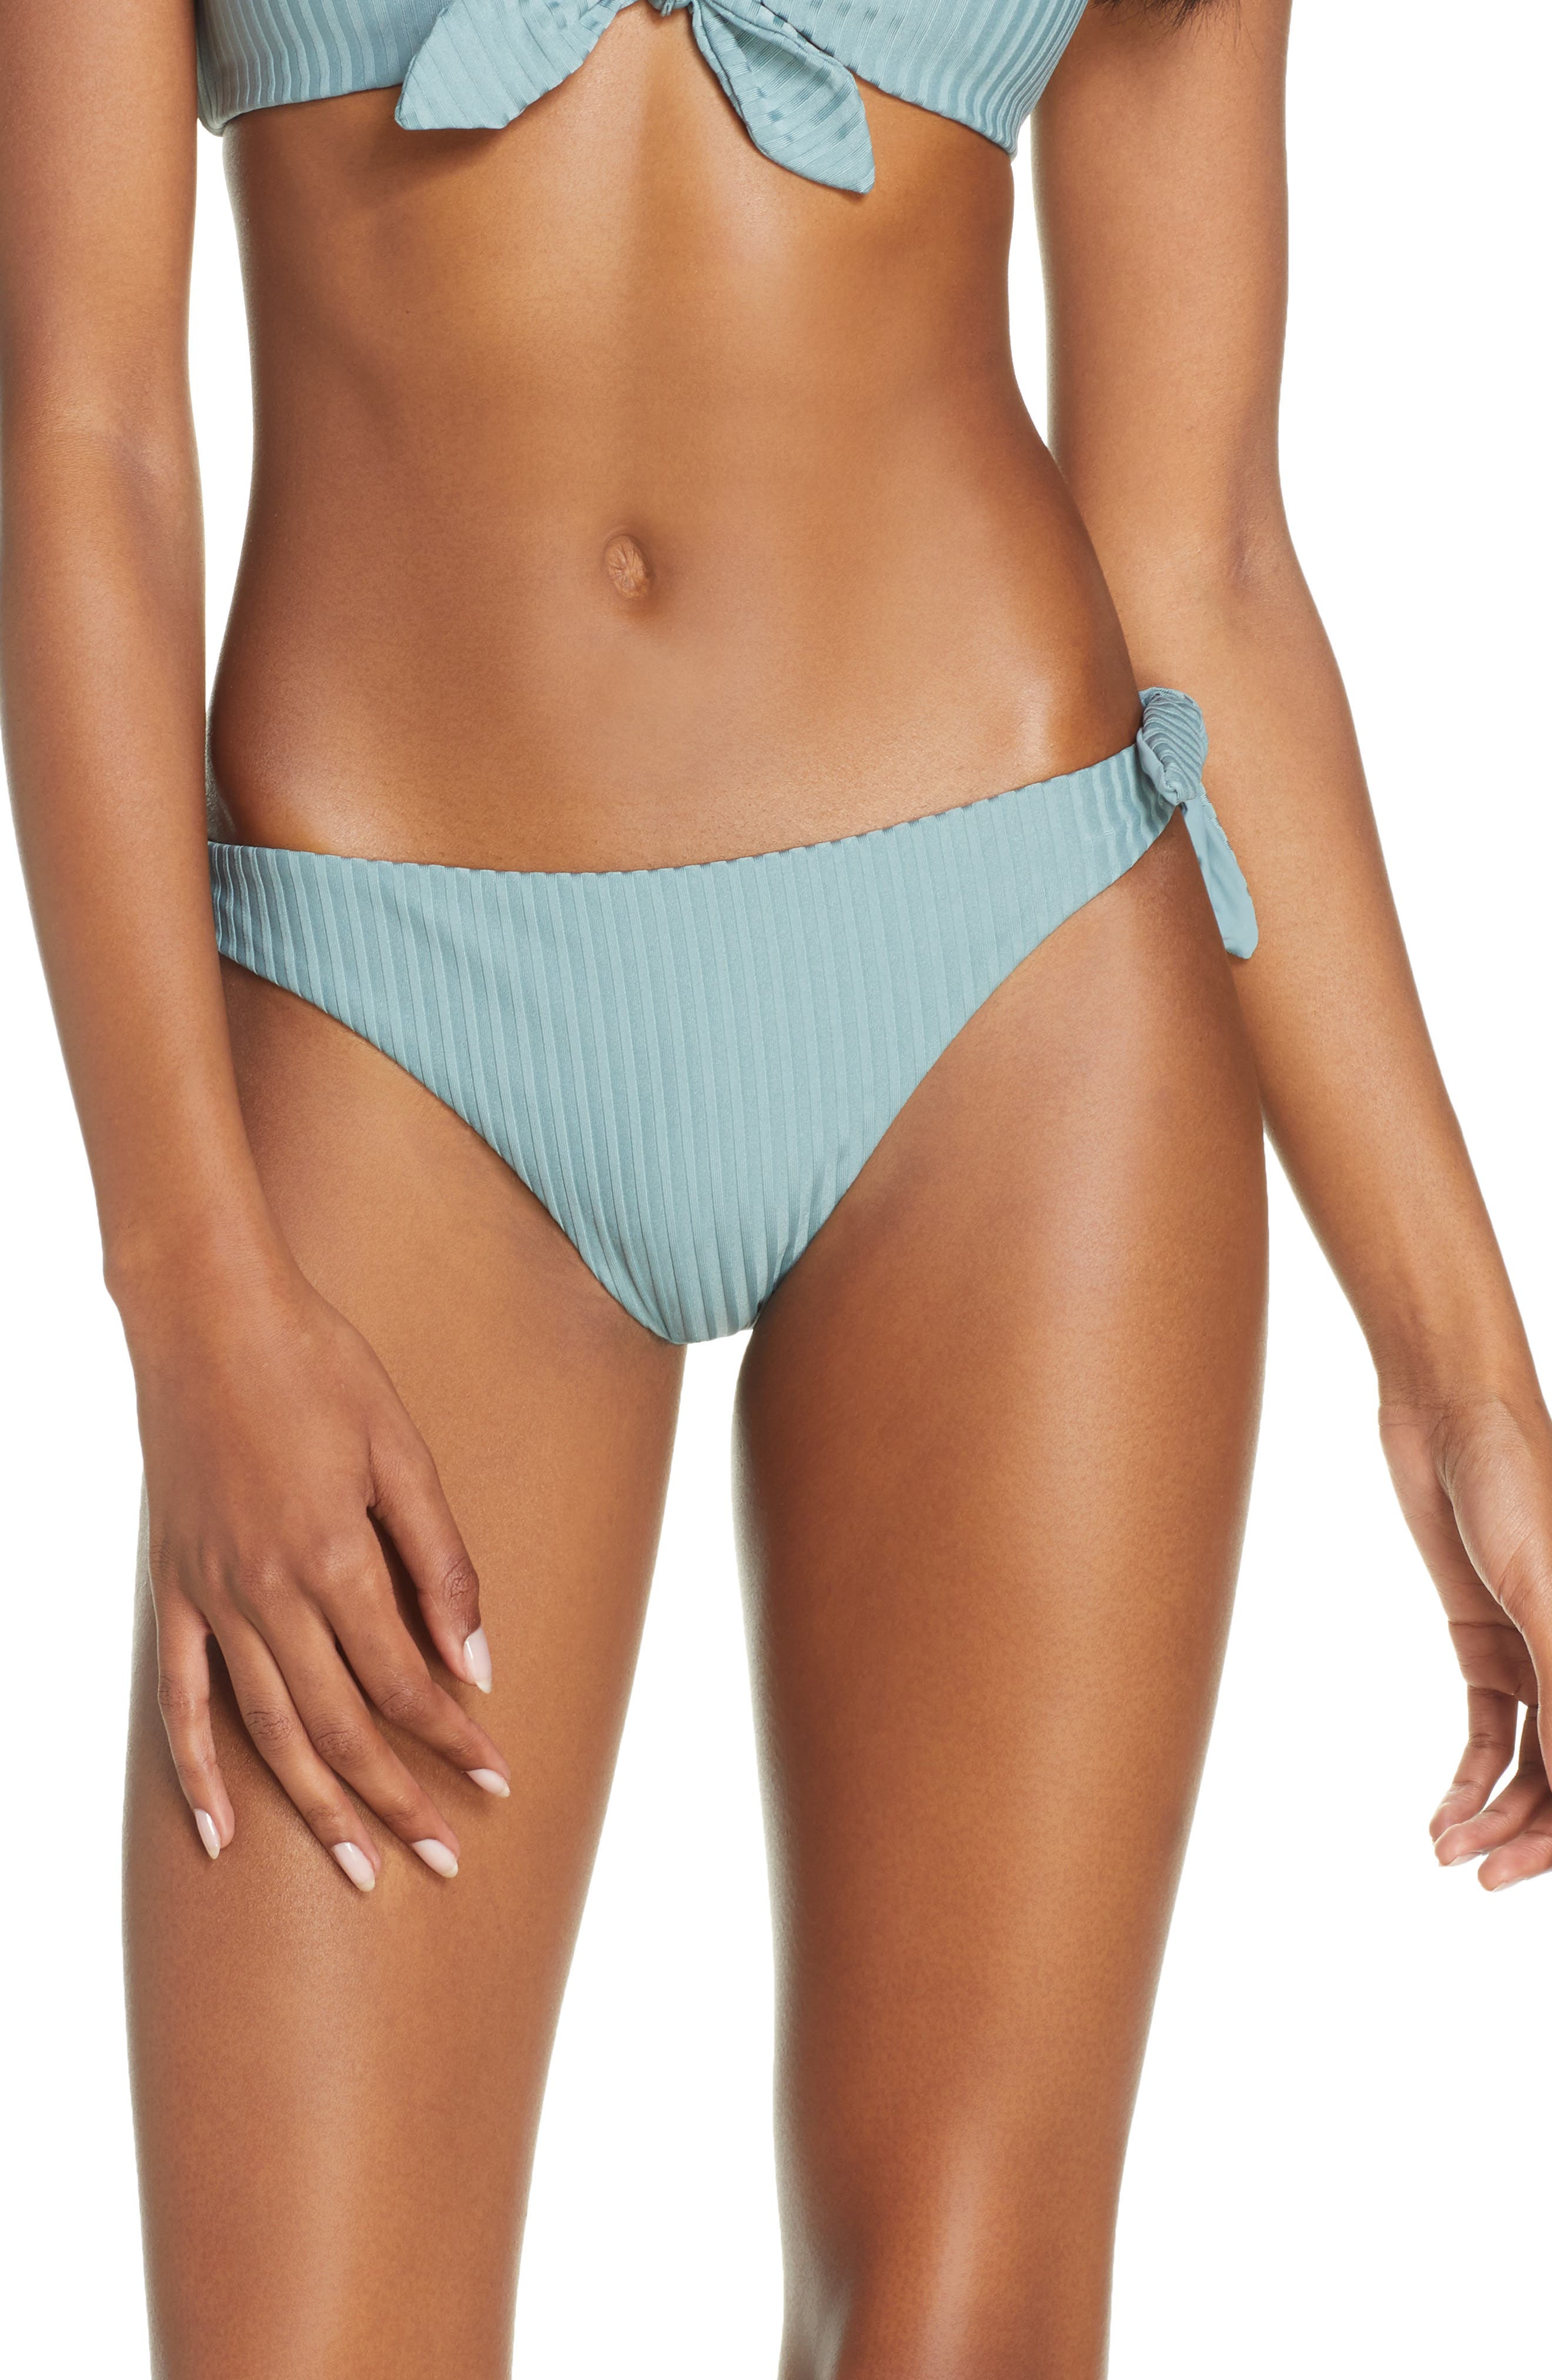 DOLCE VITA, Day Glow Swim Bottoms, Main thumbnail 1, color, AGAVE